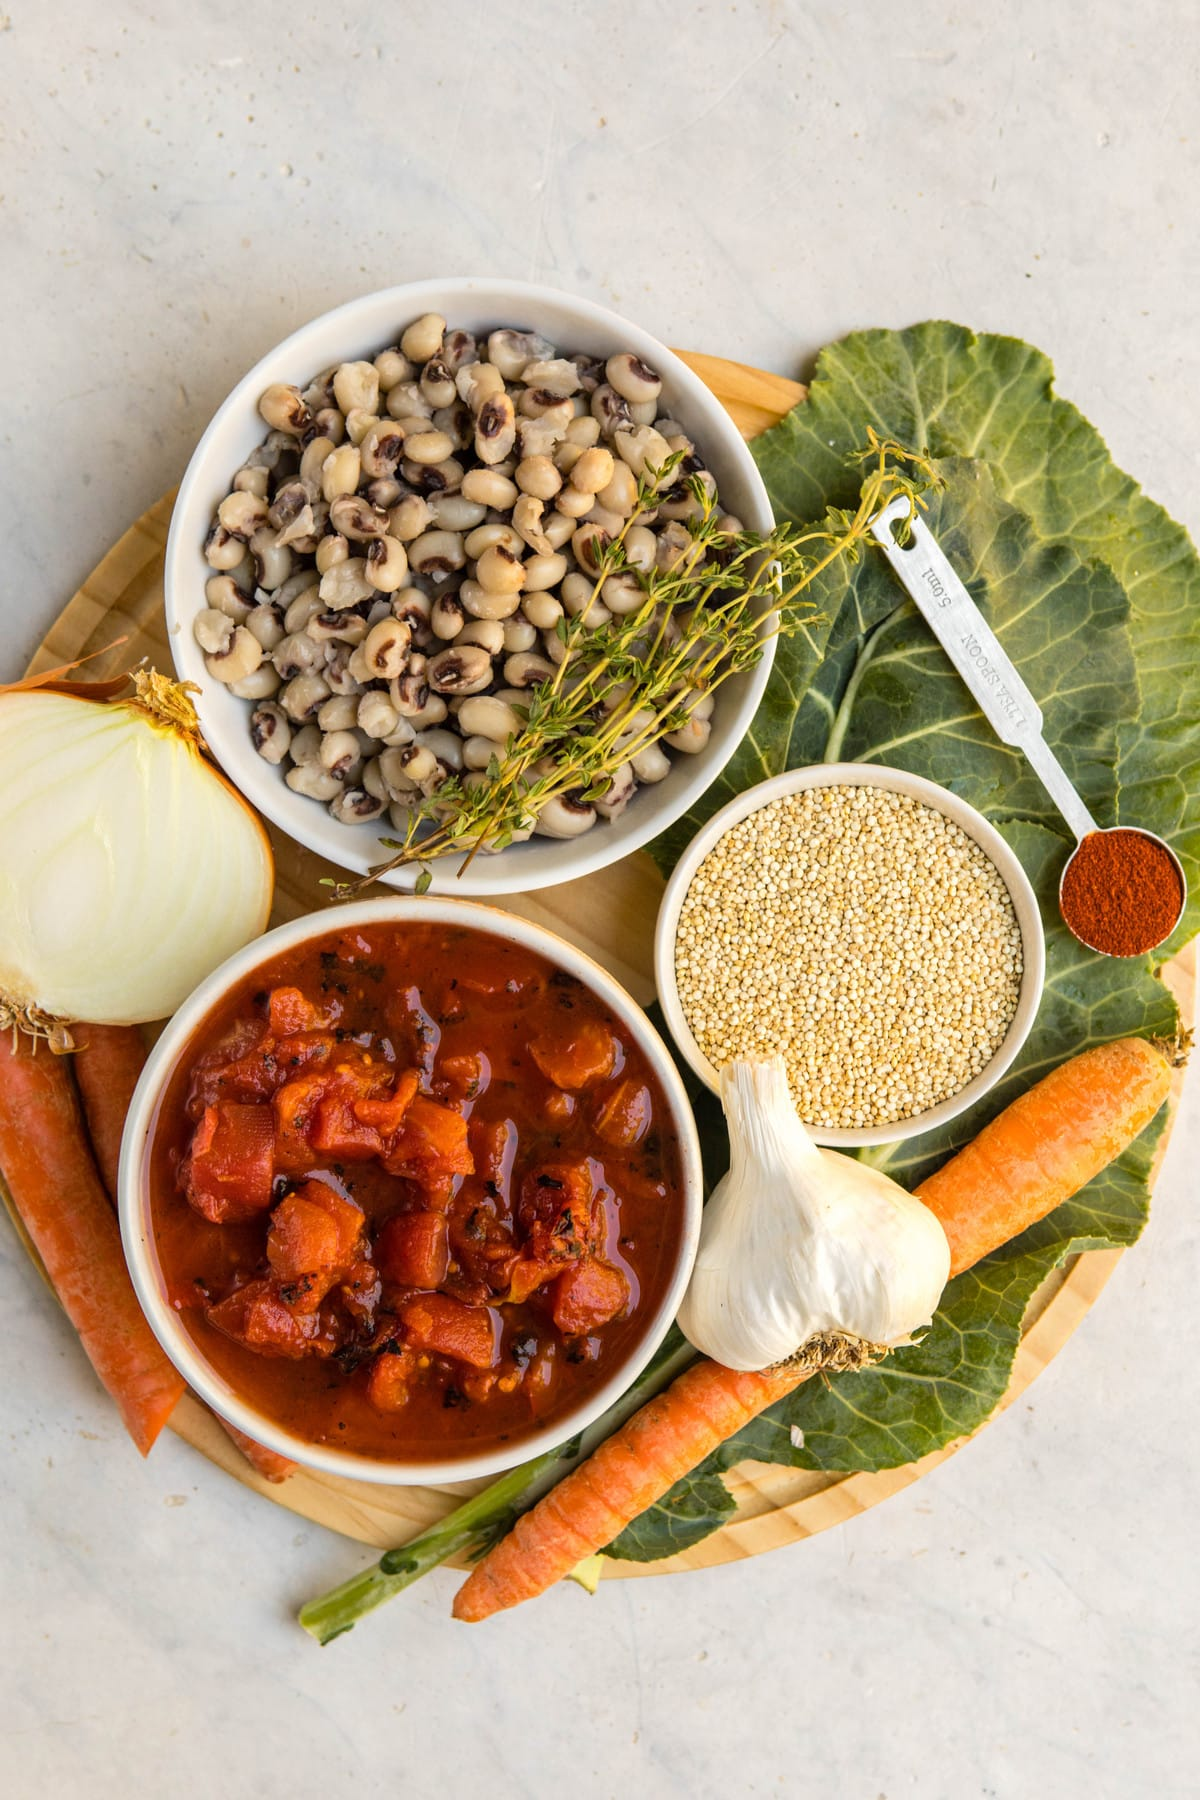 ingredients for black-eyed pea soup with quinoa on wooden cutting board